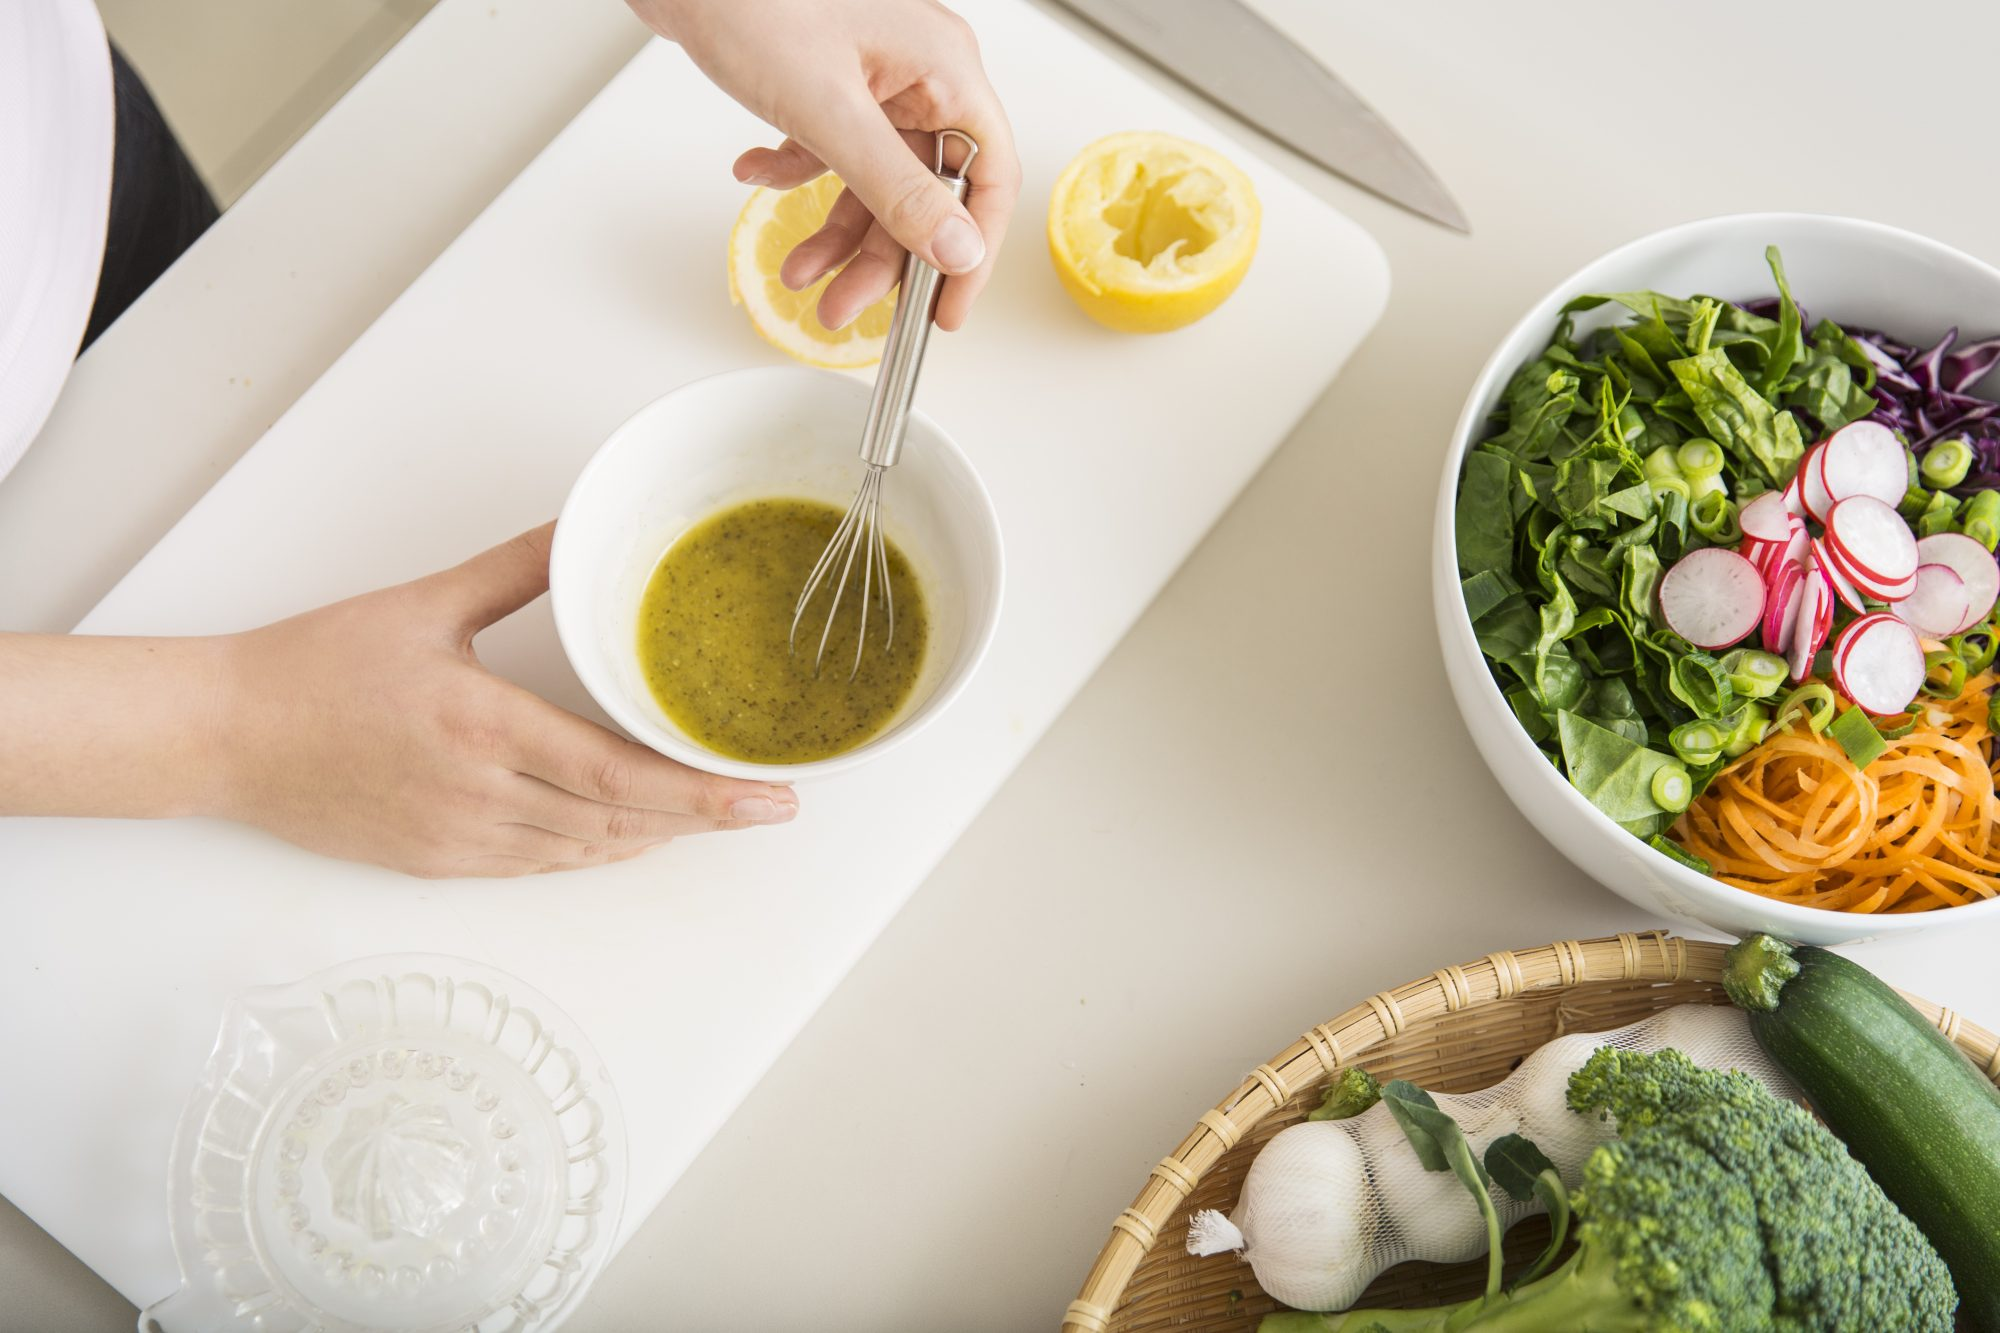 3 Easy Salad Dressing Recipes You Can Make at Home